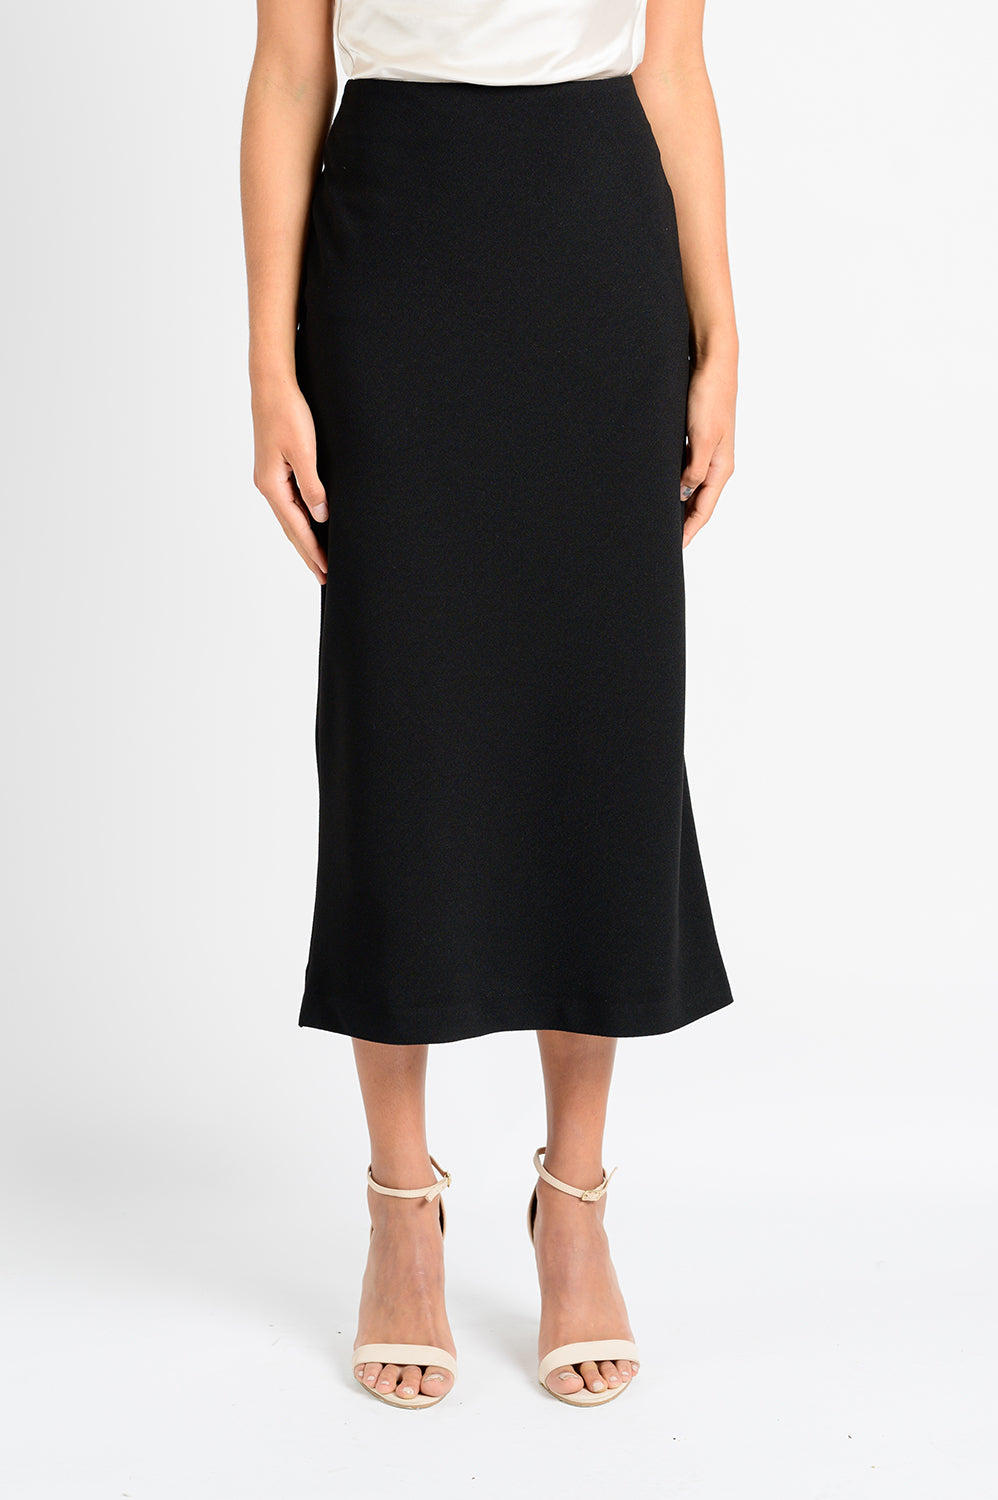 OFS BIAS SKIRT IN BLACK CREPE